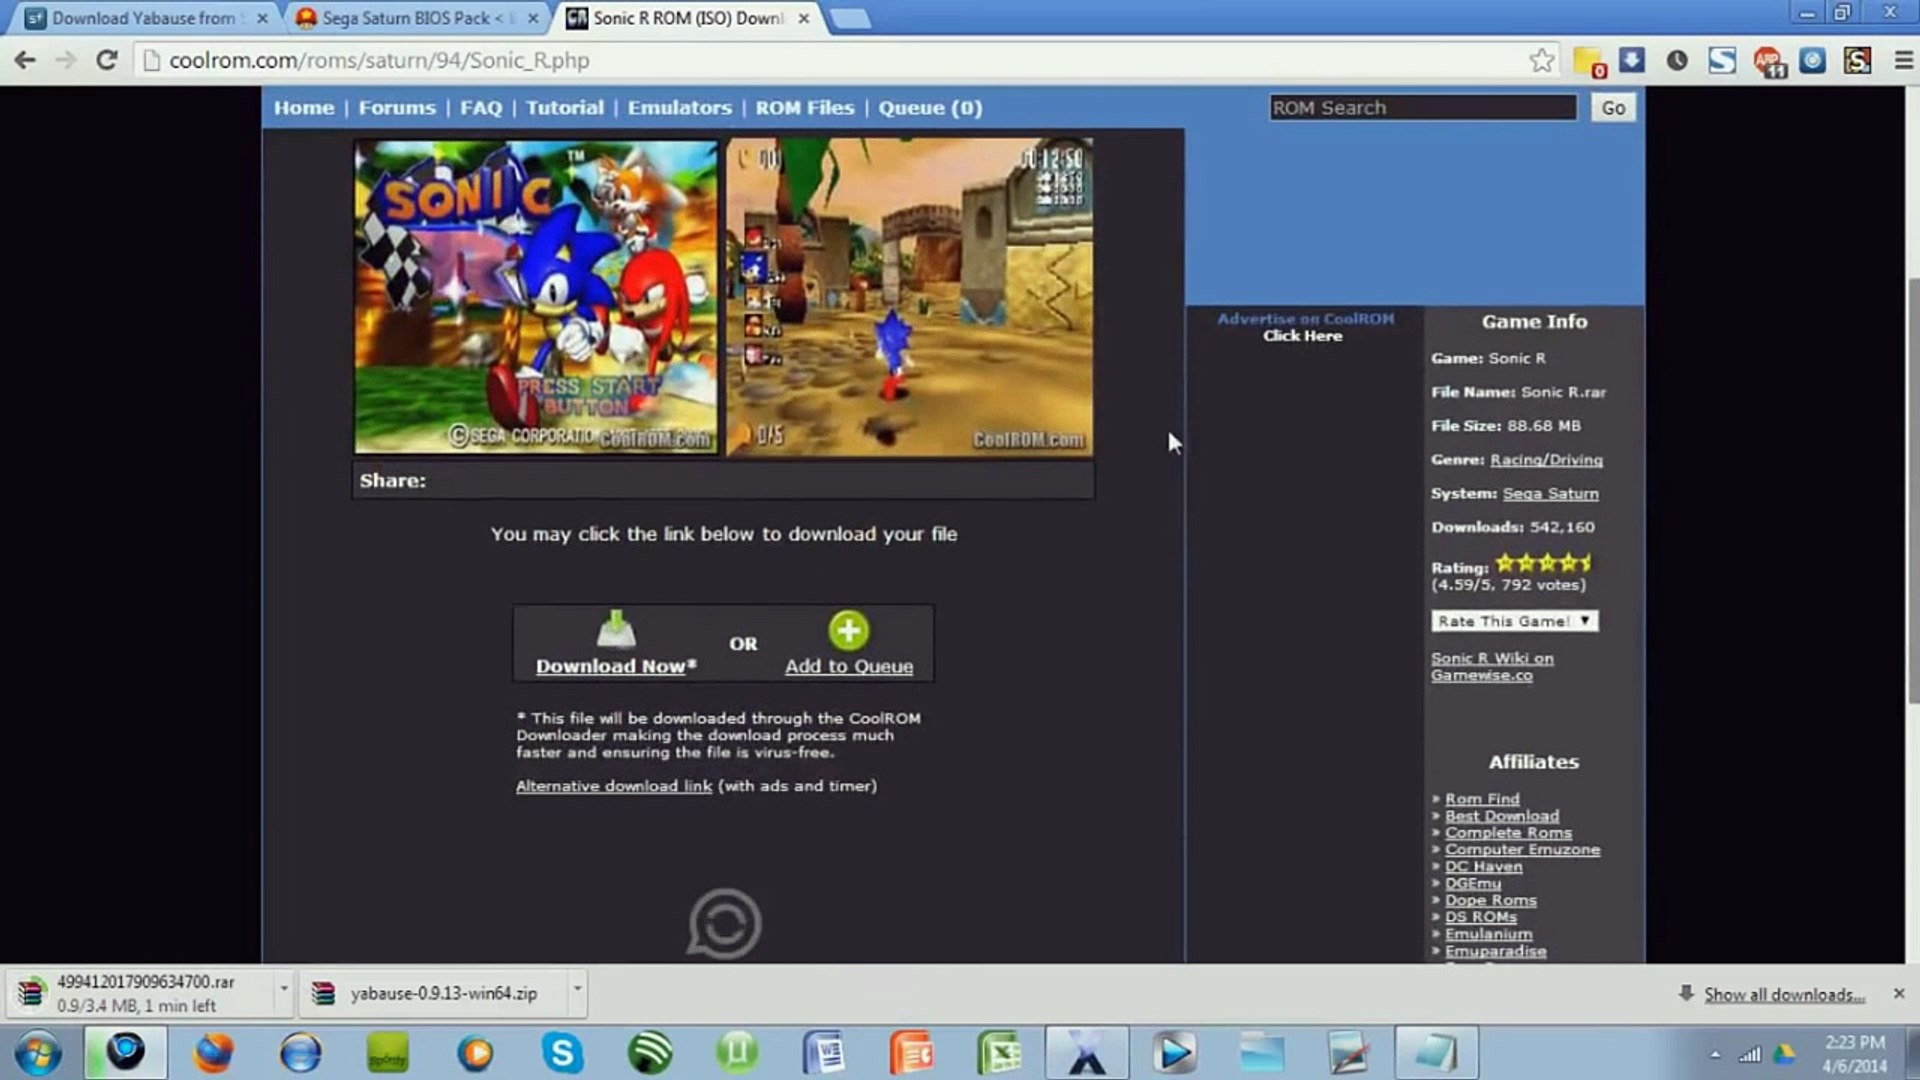 How to get a Sega Saturn Emulator on your PC (Voice Tutorial)